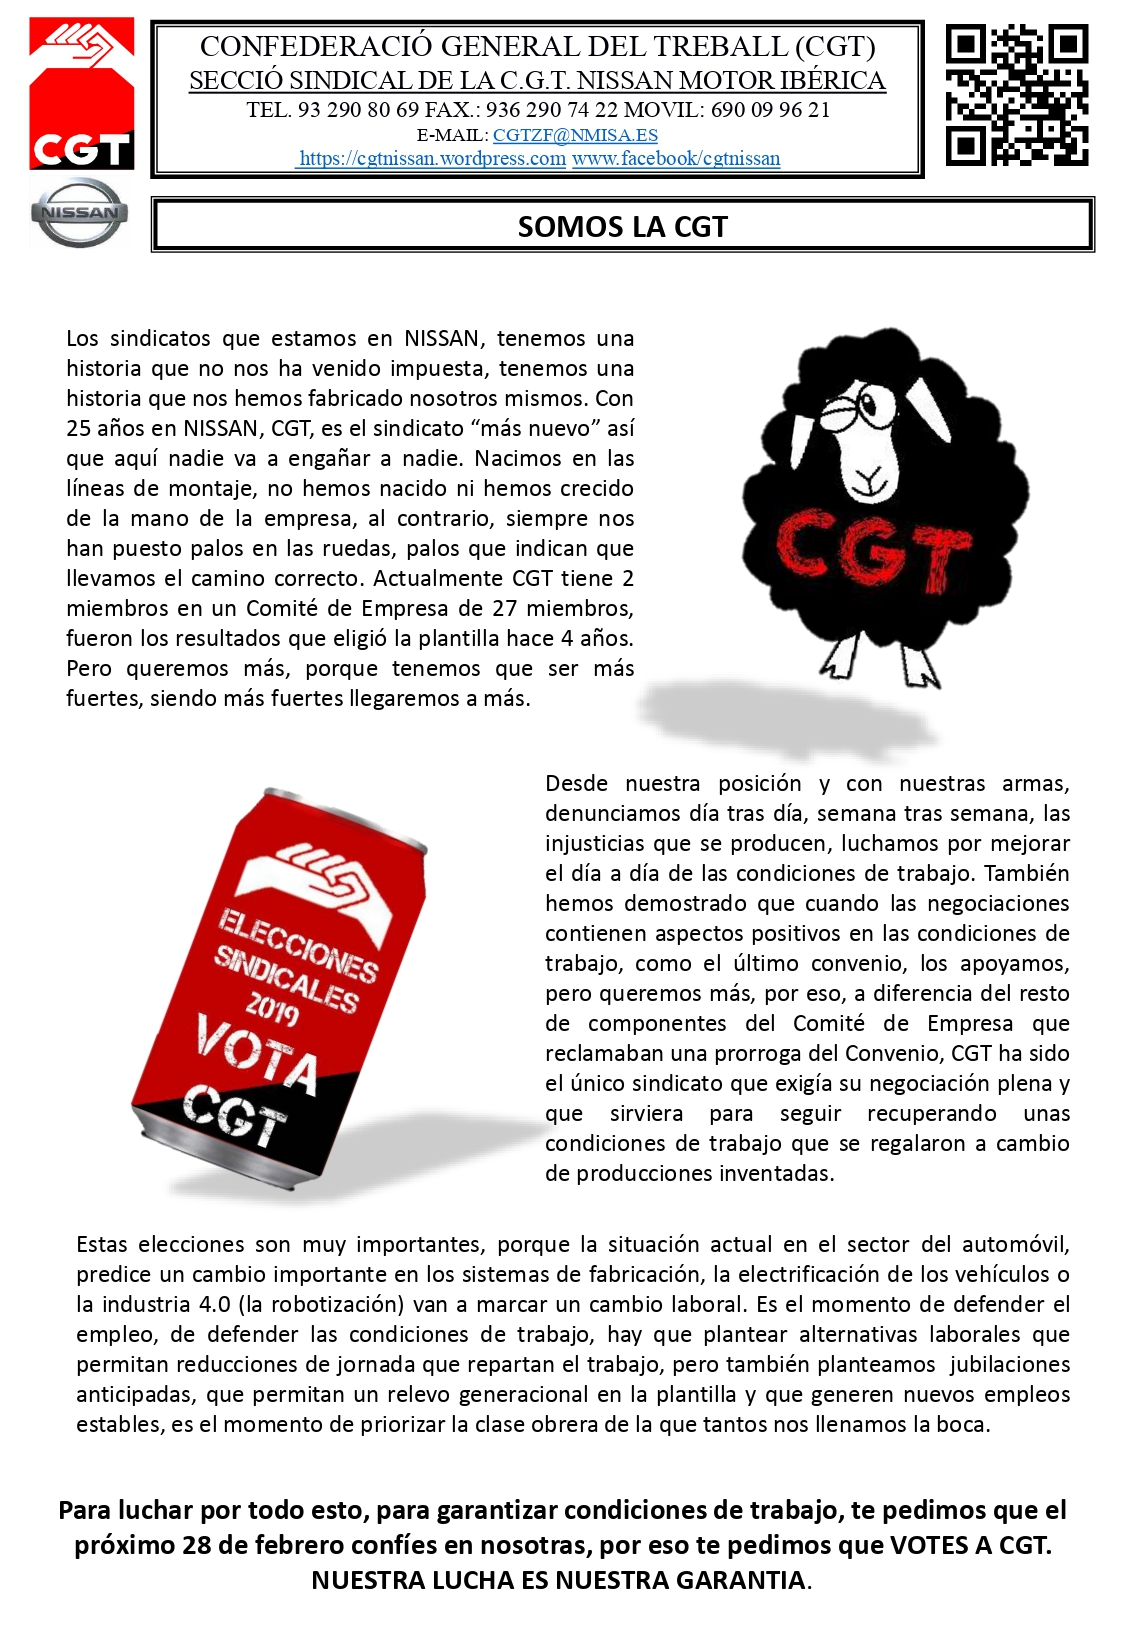 SOMOS CGT_pages-to-jpg-0001